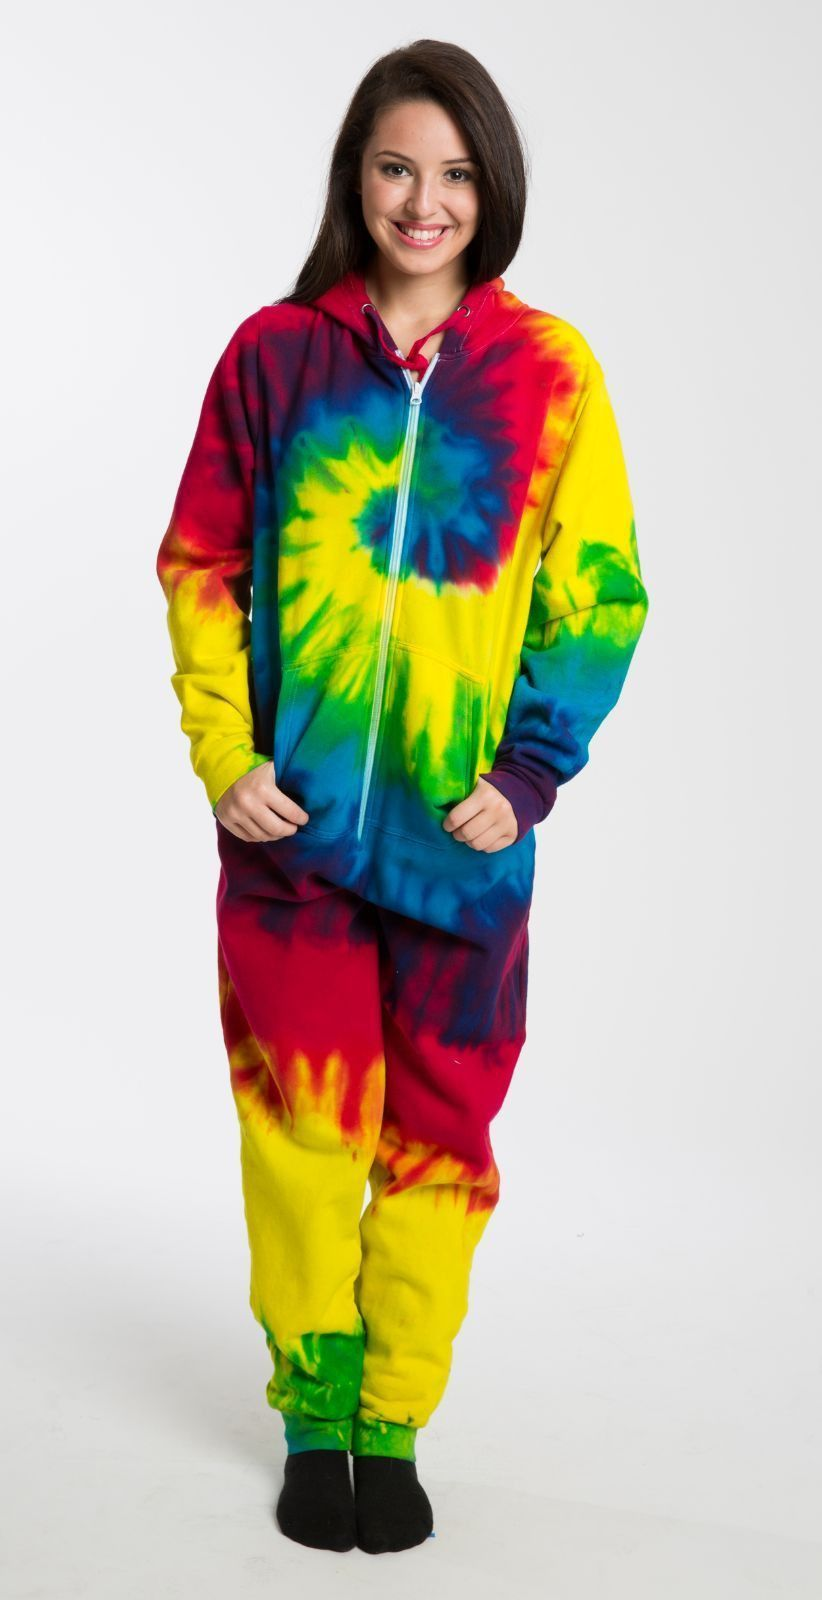 fb0212a98 Tie Dye Rainbow Onesie For Adults